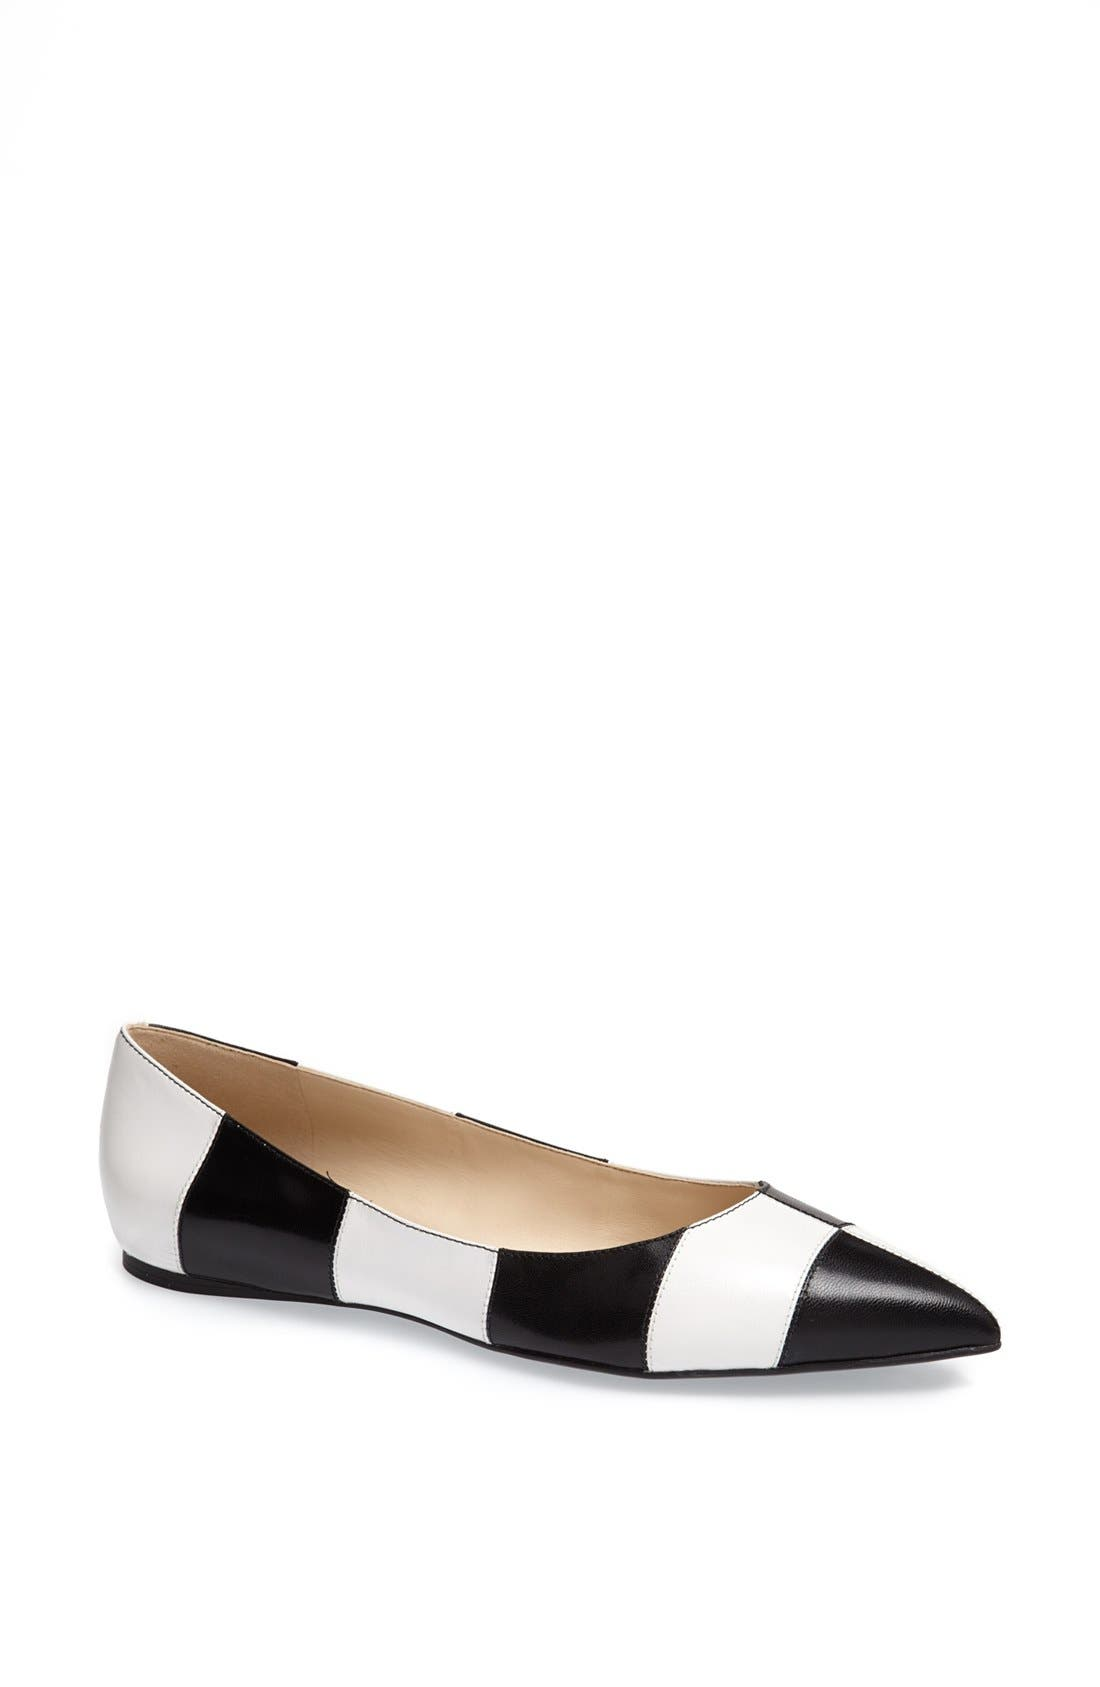 Alternate Image 1 Selected - Nine West 'Angieann' Flat